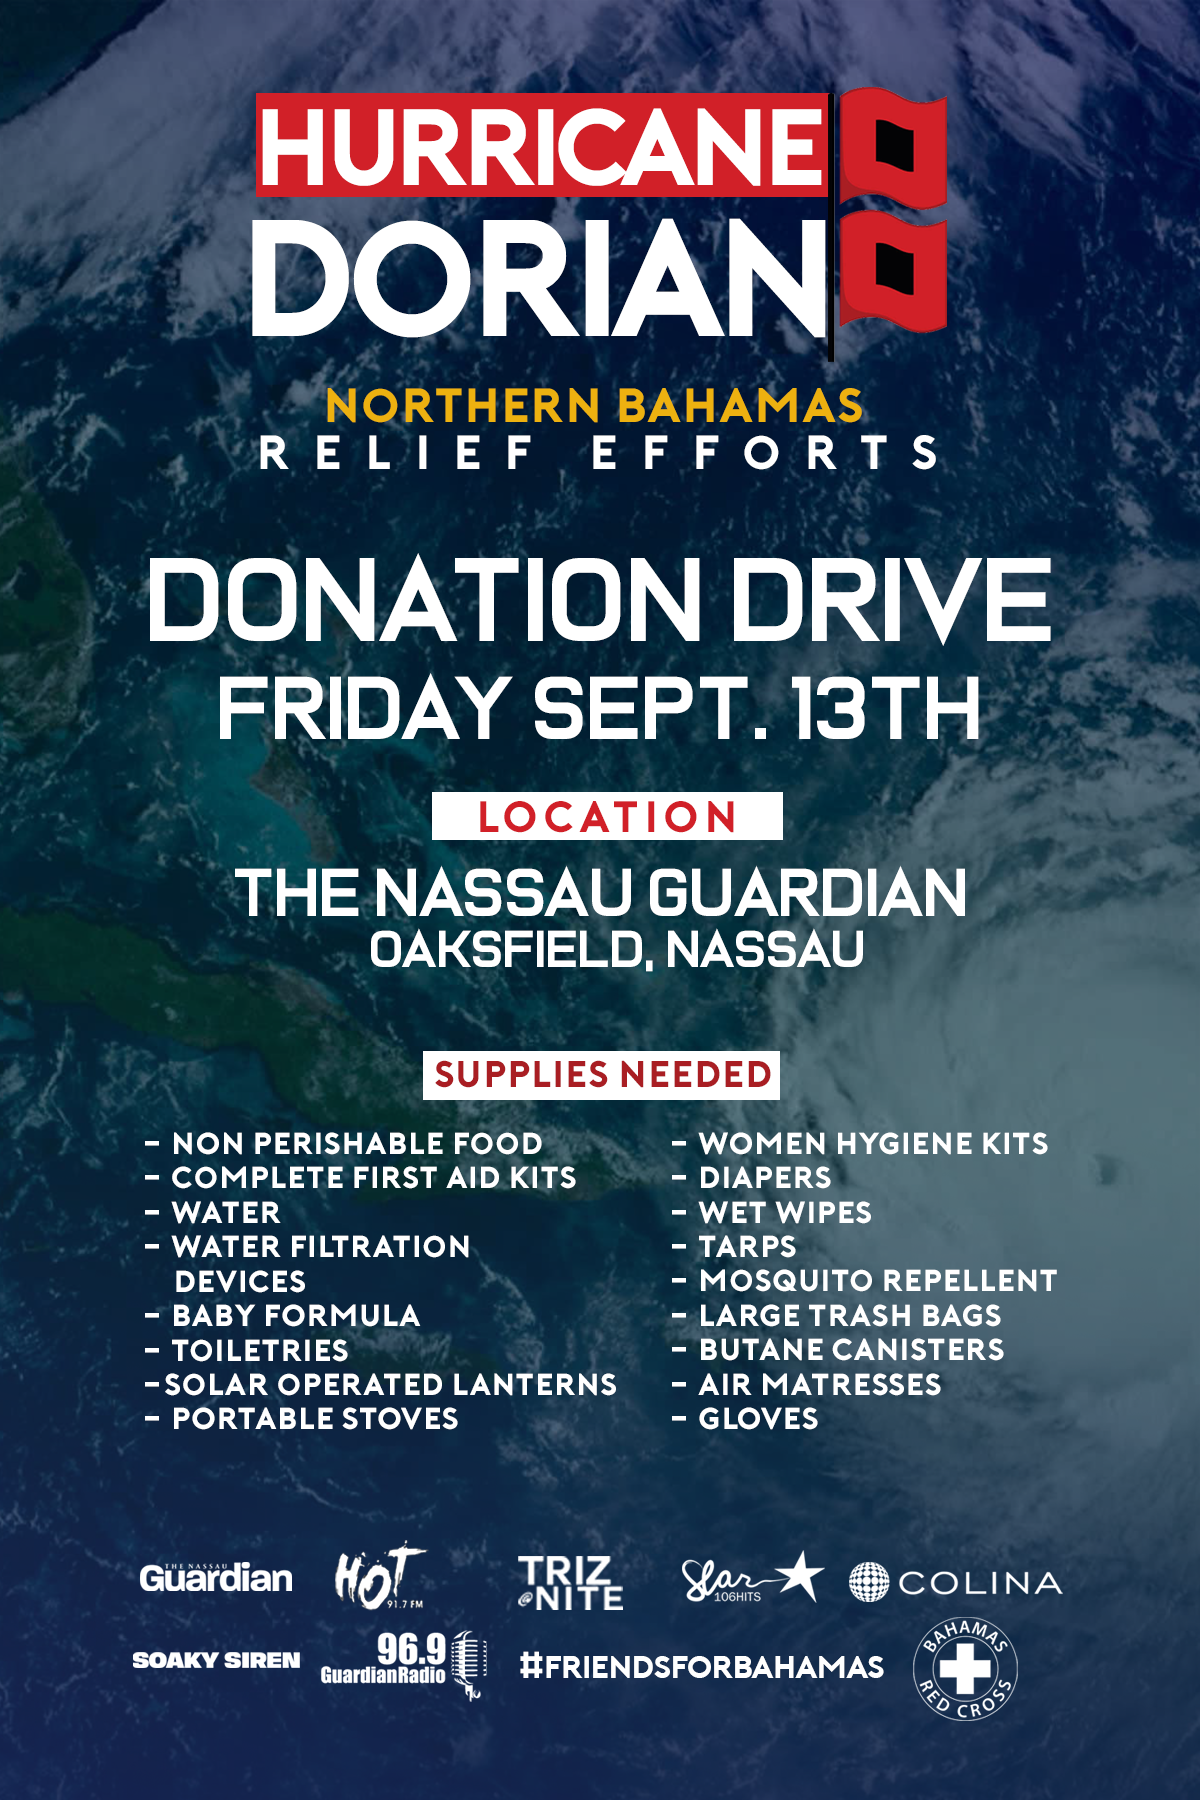 FRIDAY,SEPT 13TH— - NASSAU GUARDIAN 7AM UNTIL